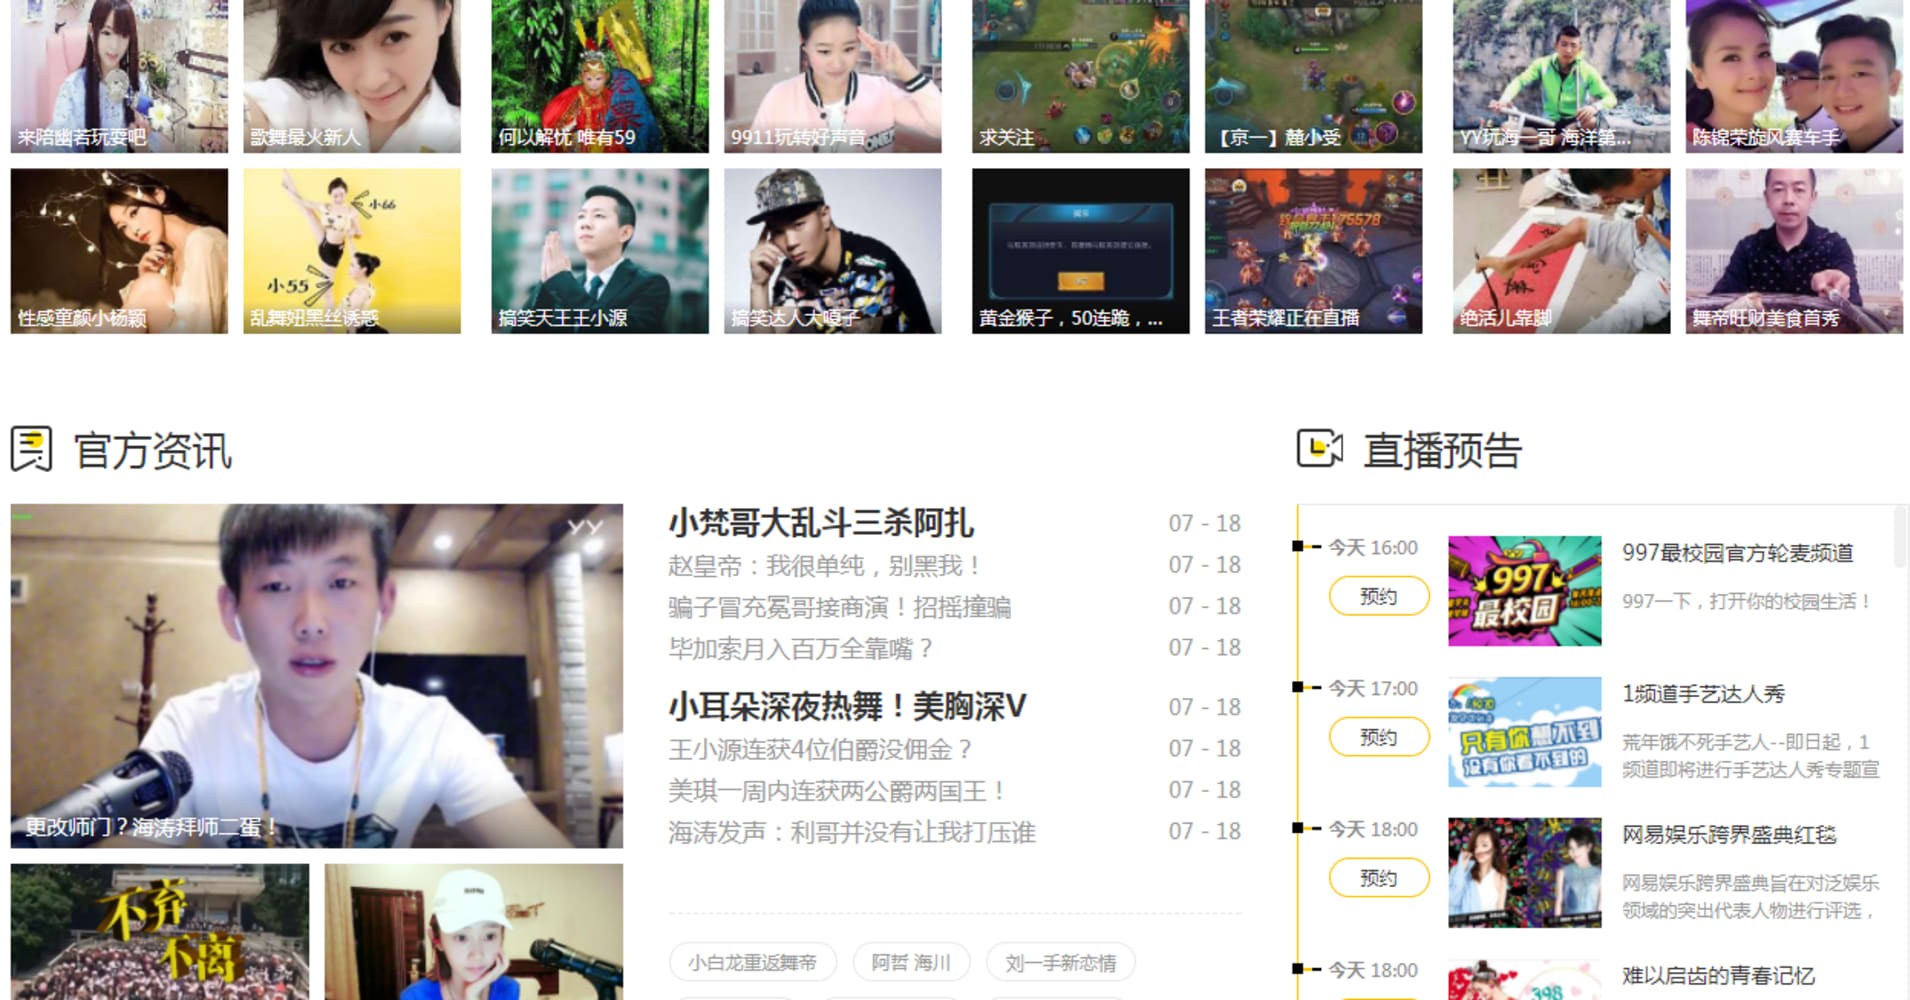 Showdown Brewing: With Lessons Learned in China, a Rival is Taking on Facebook, Snapchat and YouTube